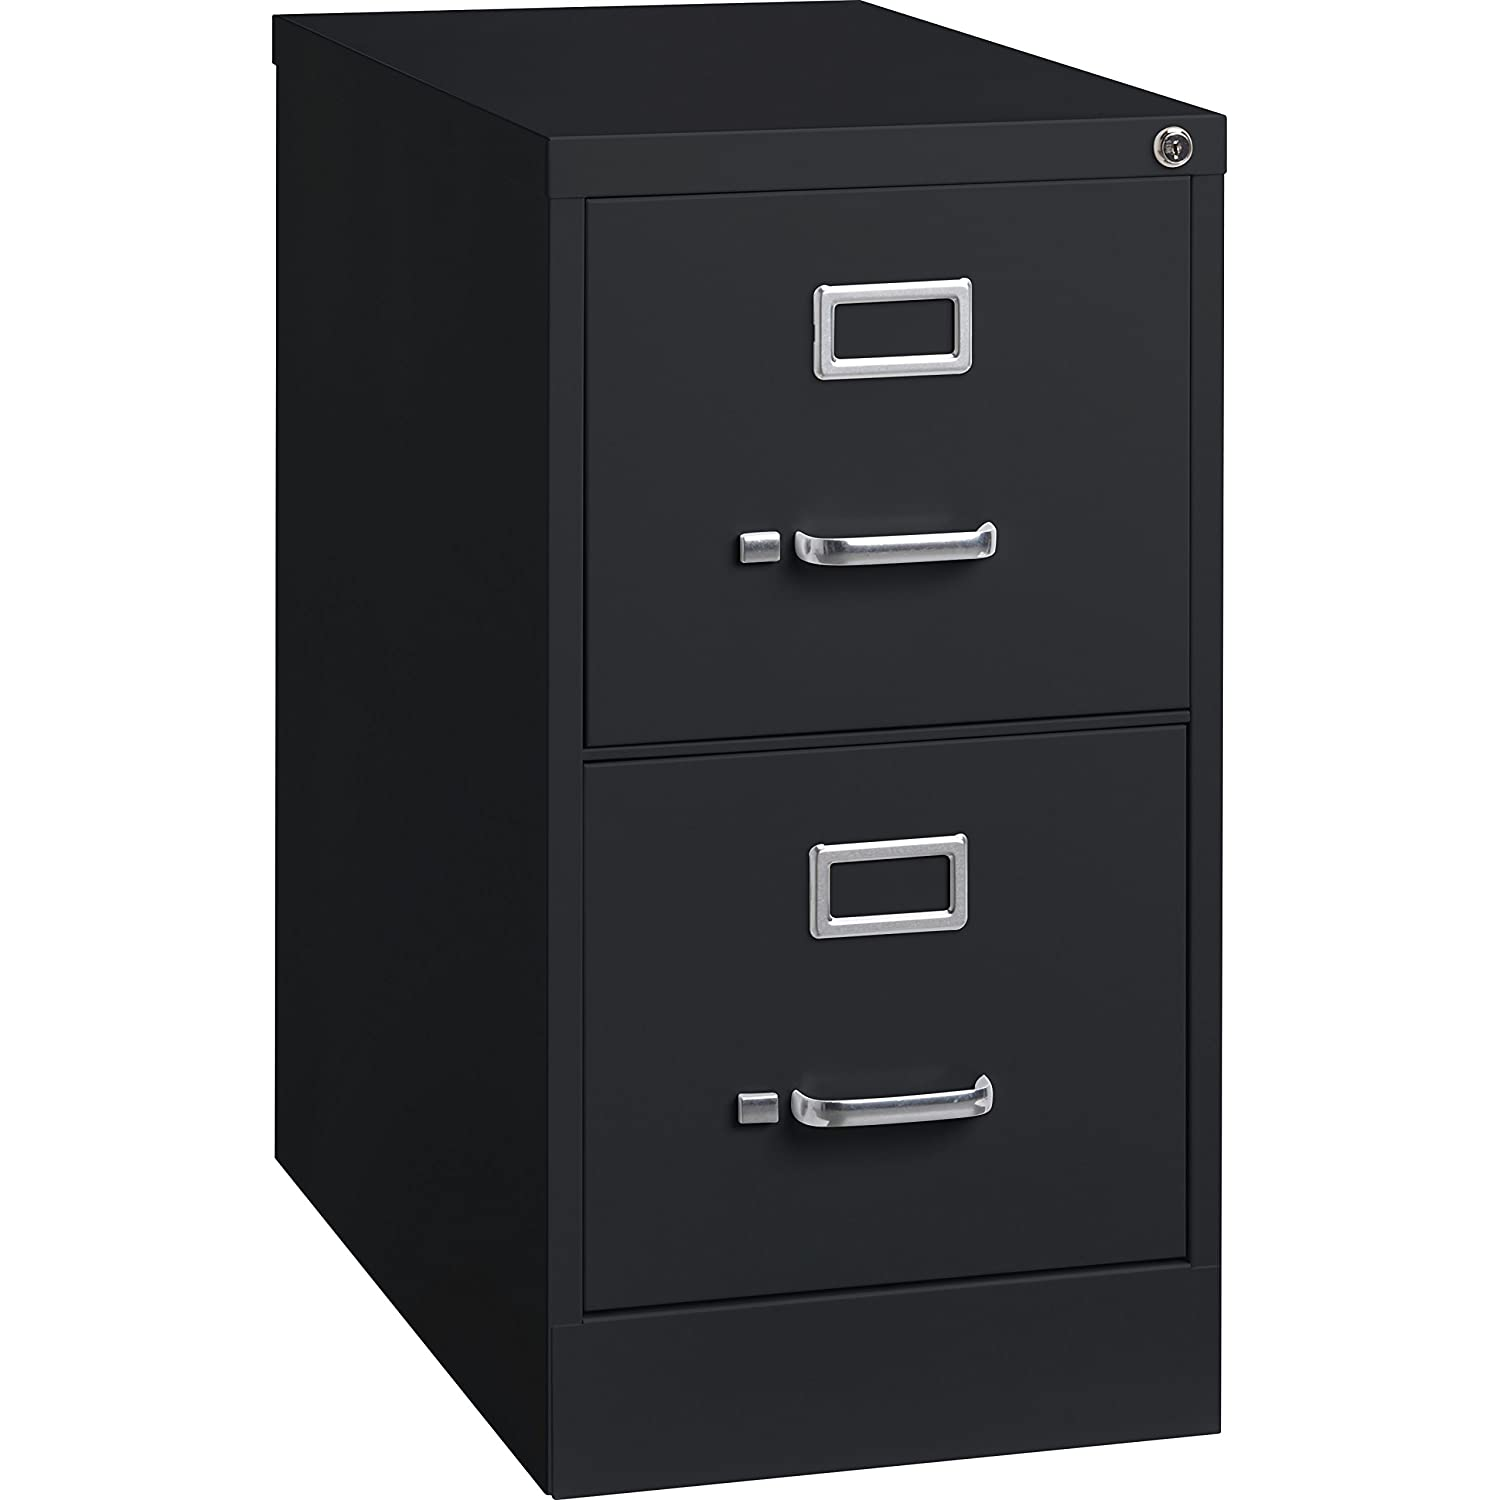 Lorell 2-Drawer Vertical File with Lock, 15 by 25 by 28-3/8-Inch, Black S.P. Richards Company LLR60653